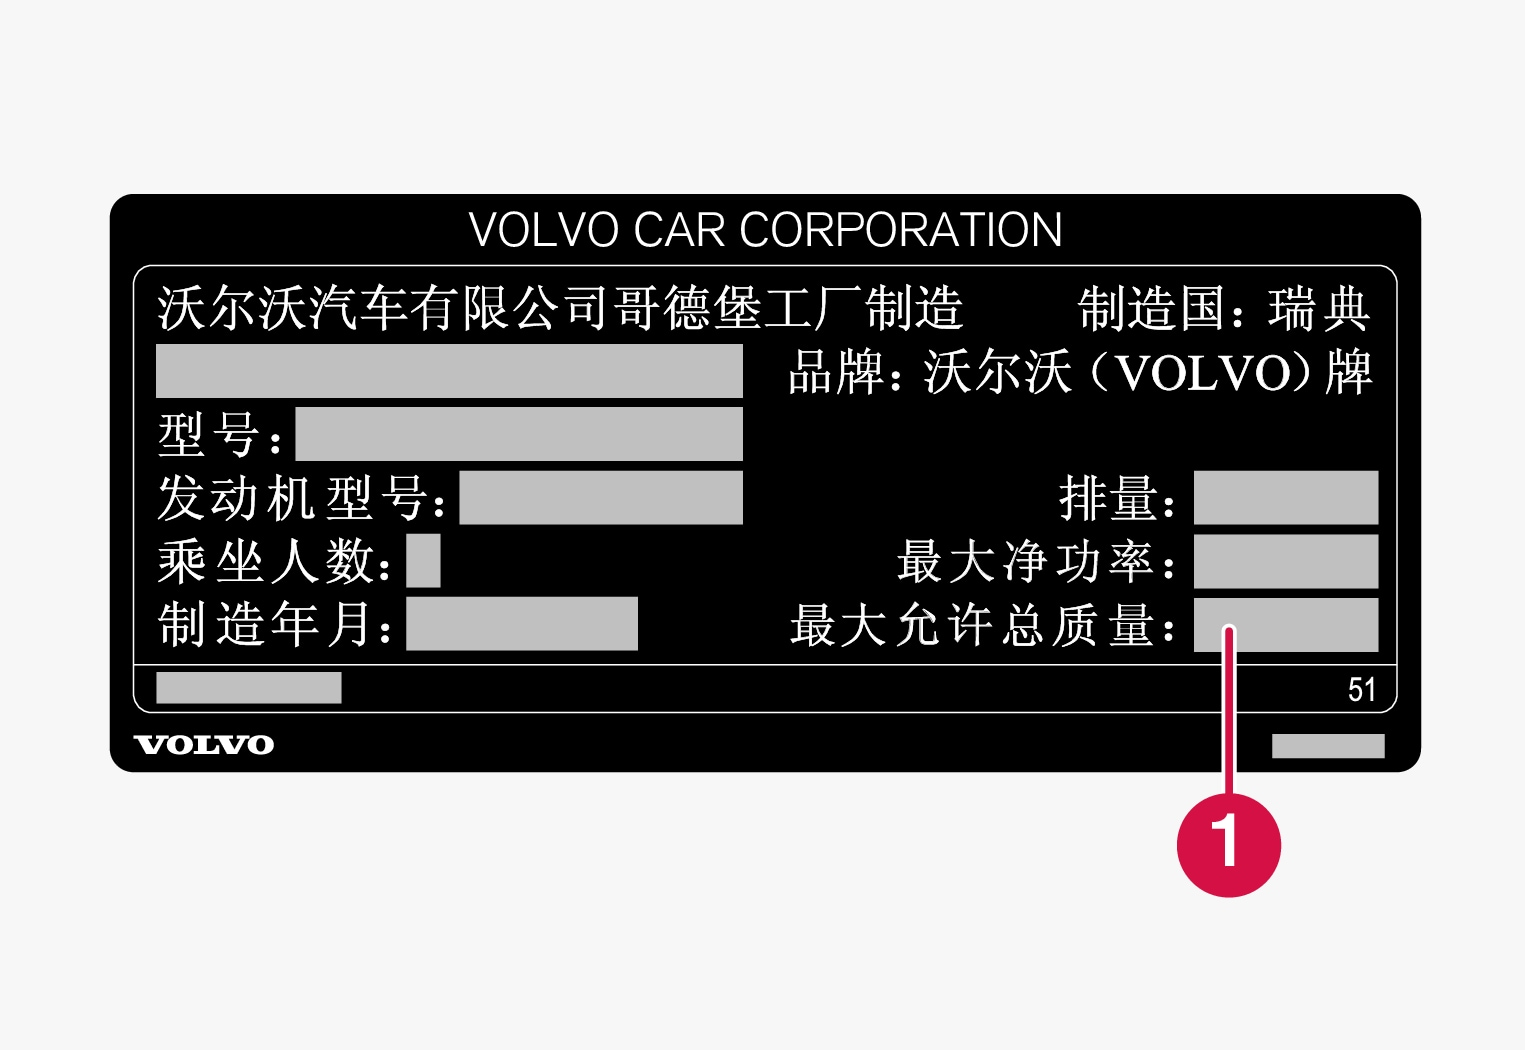 P5-1507-VIN label for vehicles imported to China, max weight